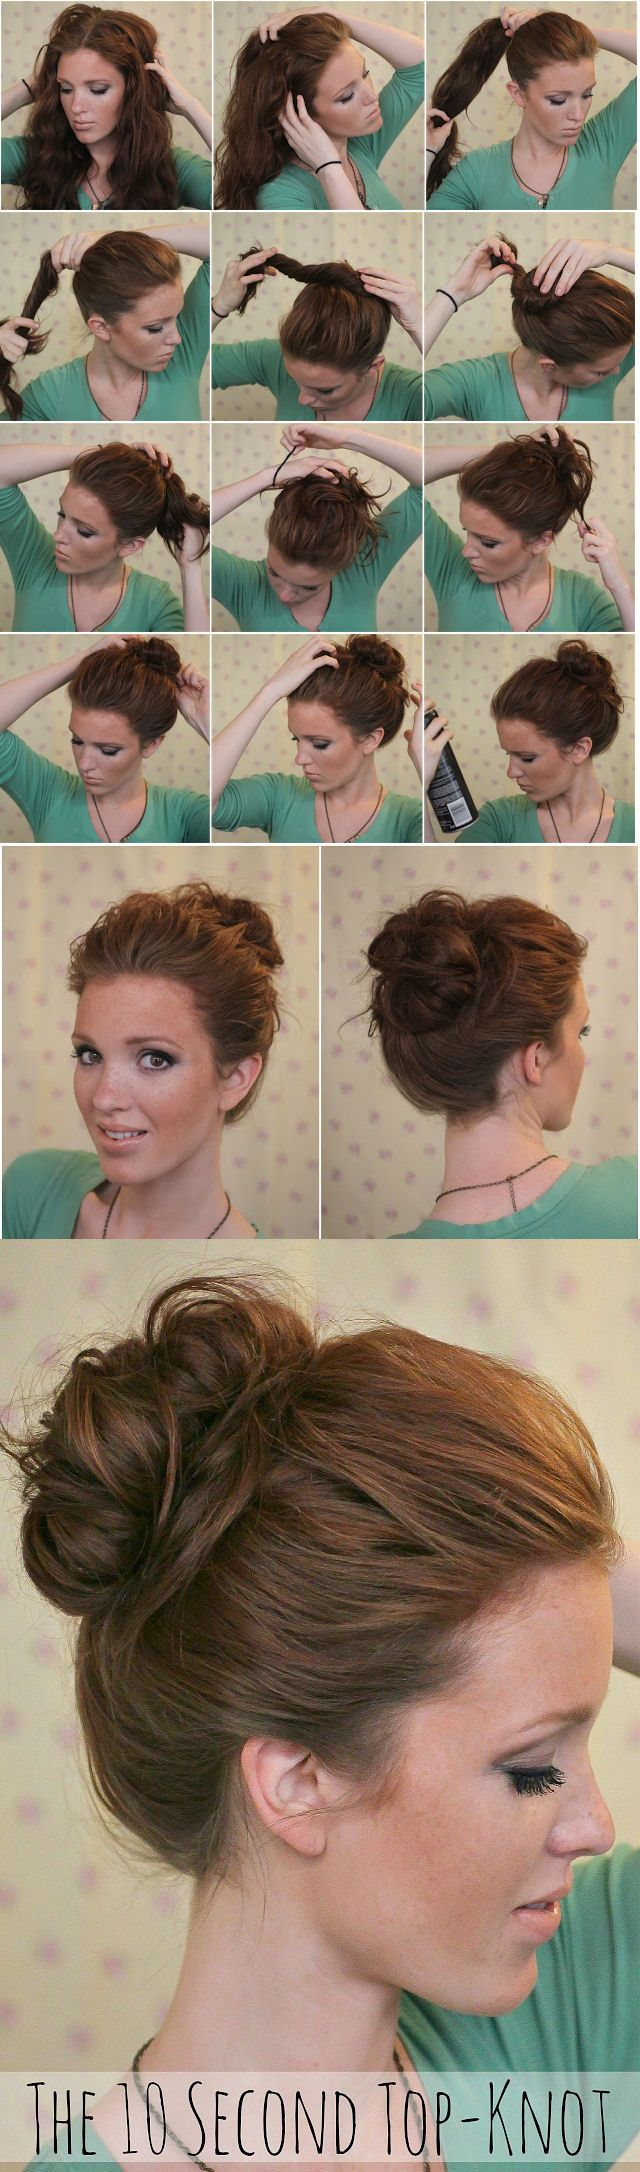 10 second top knot pictures, photos, and images for facebook